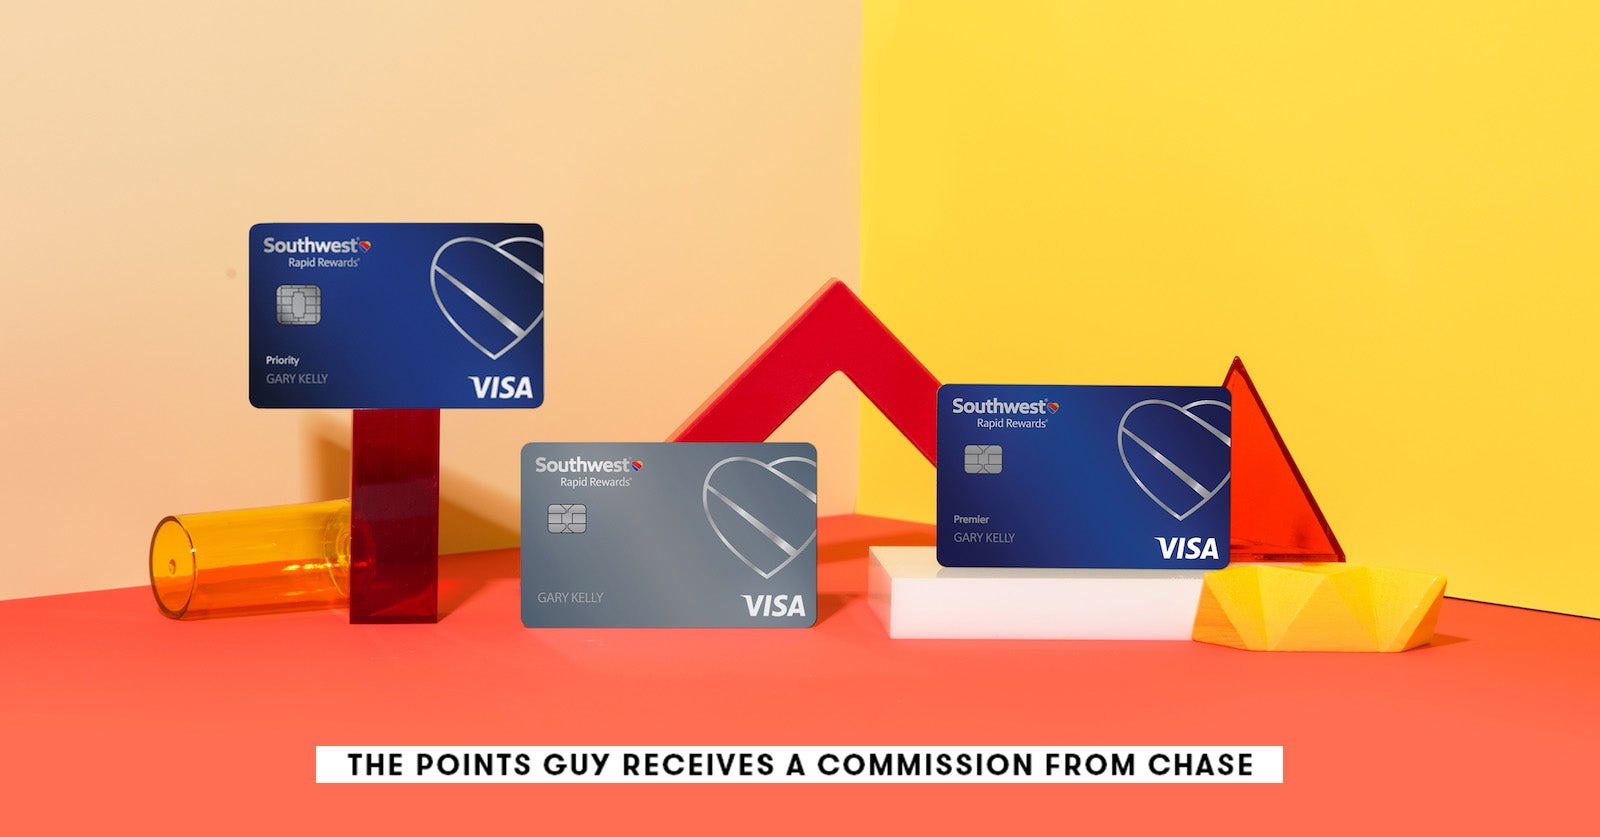 Earn Up to 50k Southwest Points with Expanded Referral Program